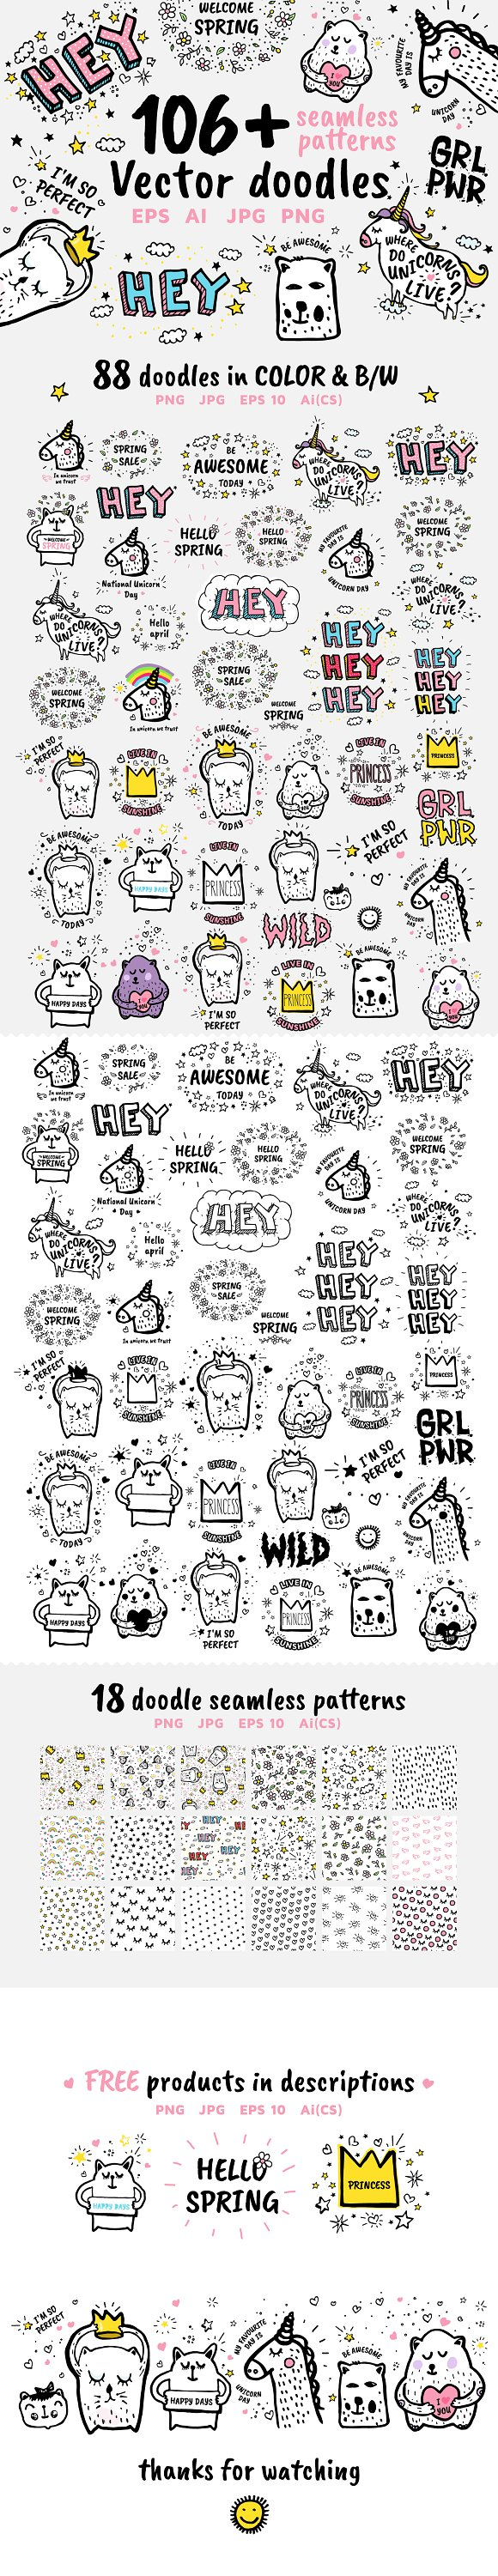 106 Vector Doodles Patterns FREE